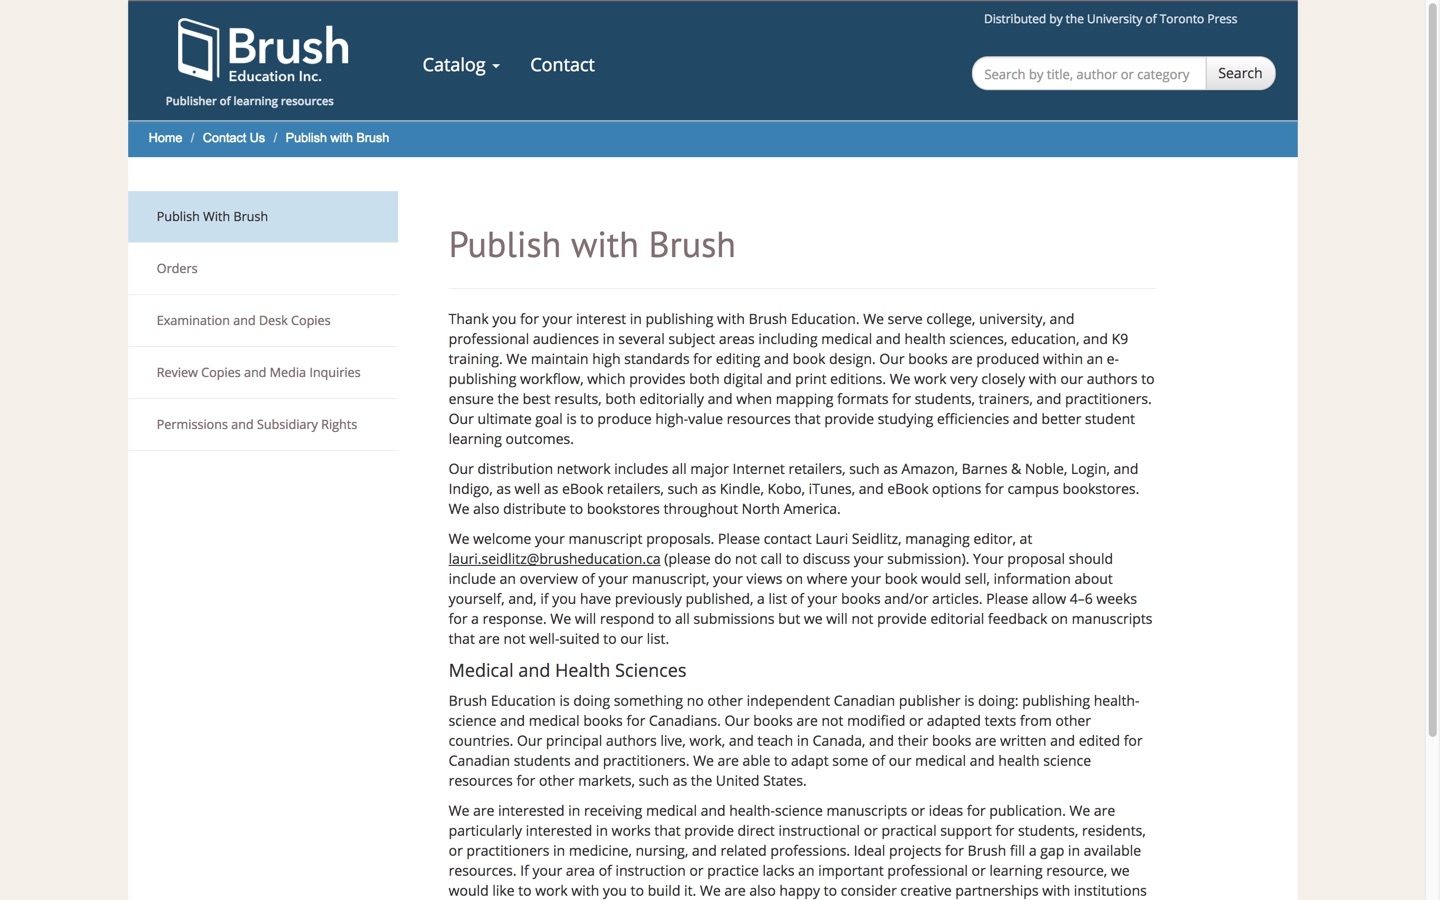 Brush Education